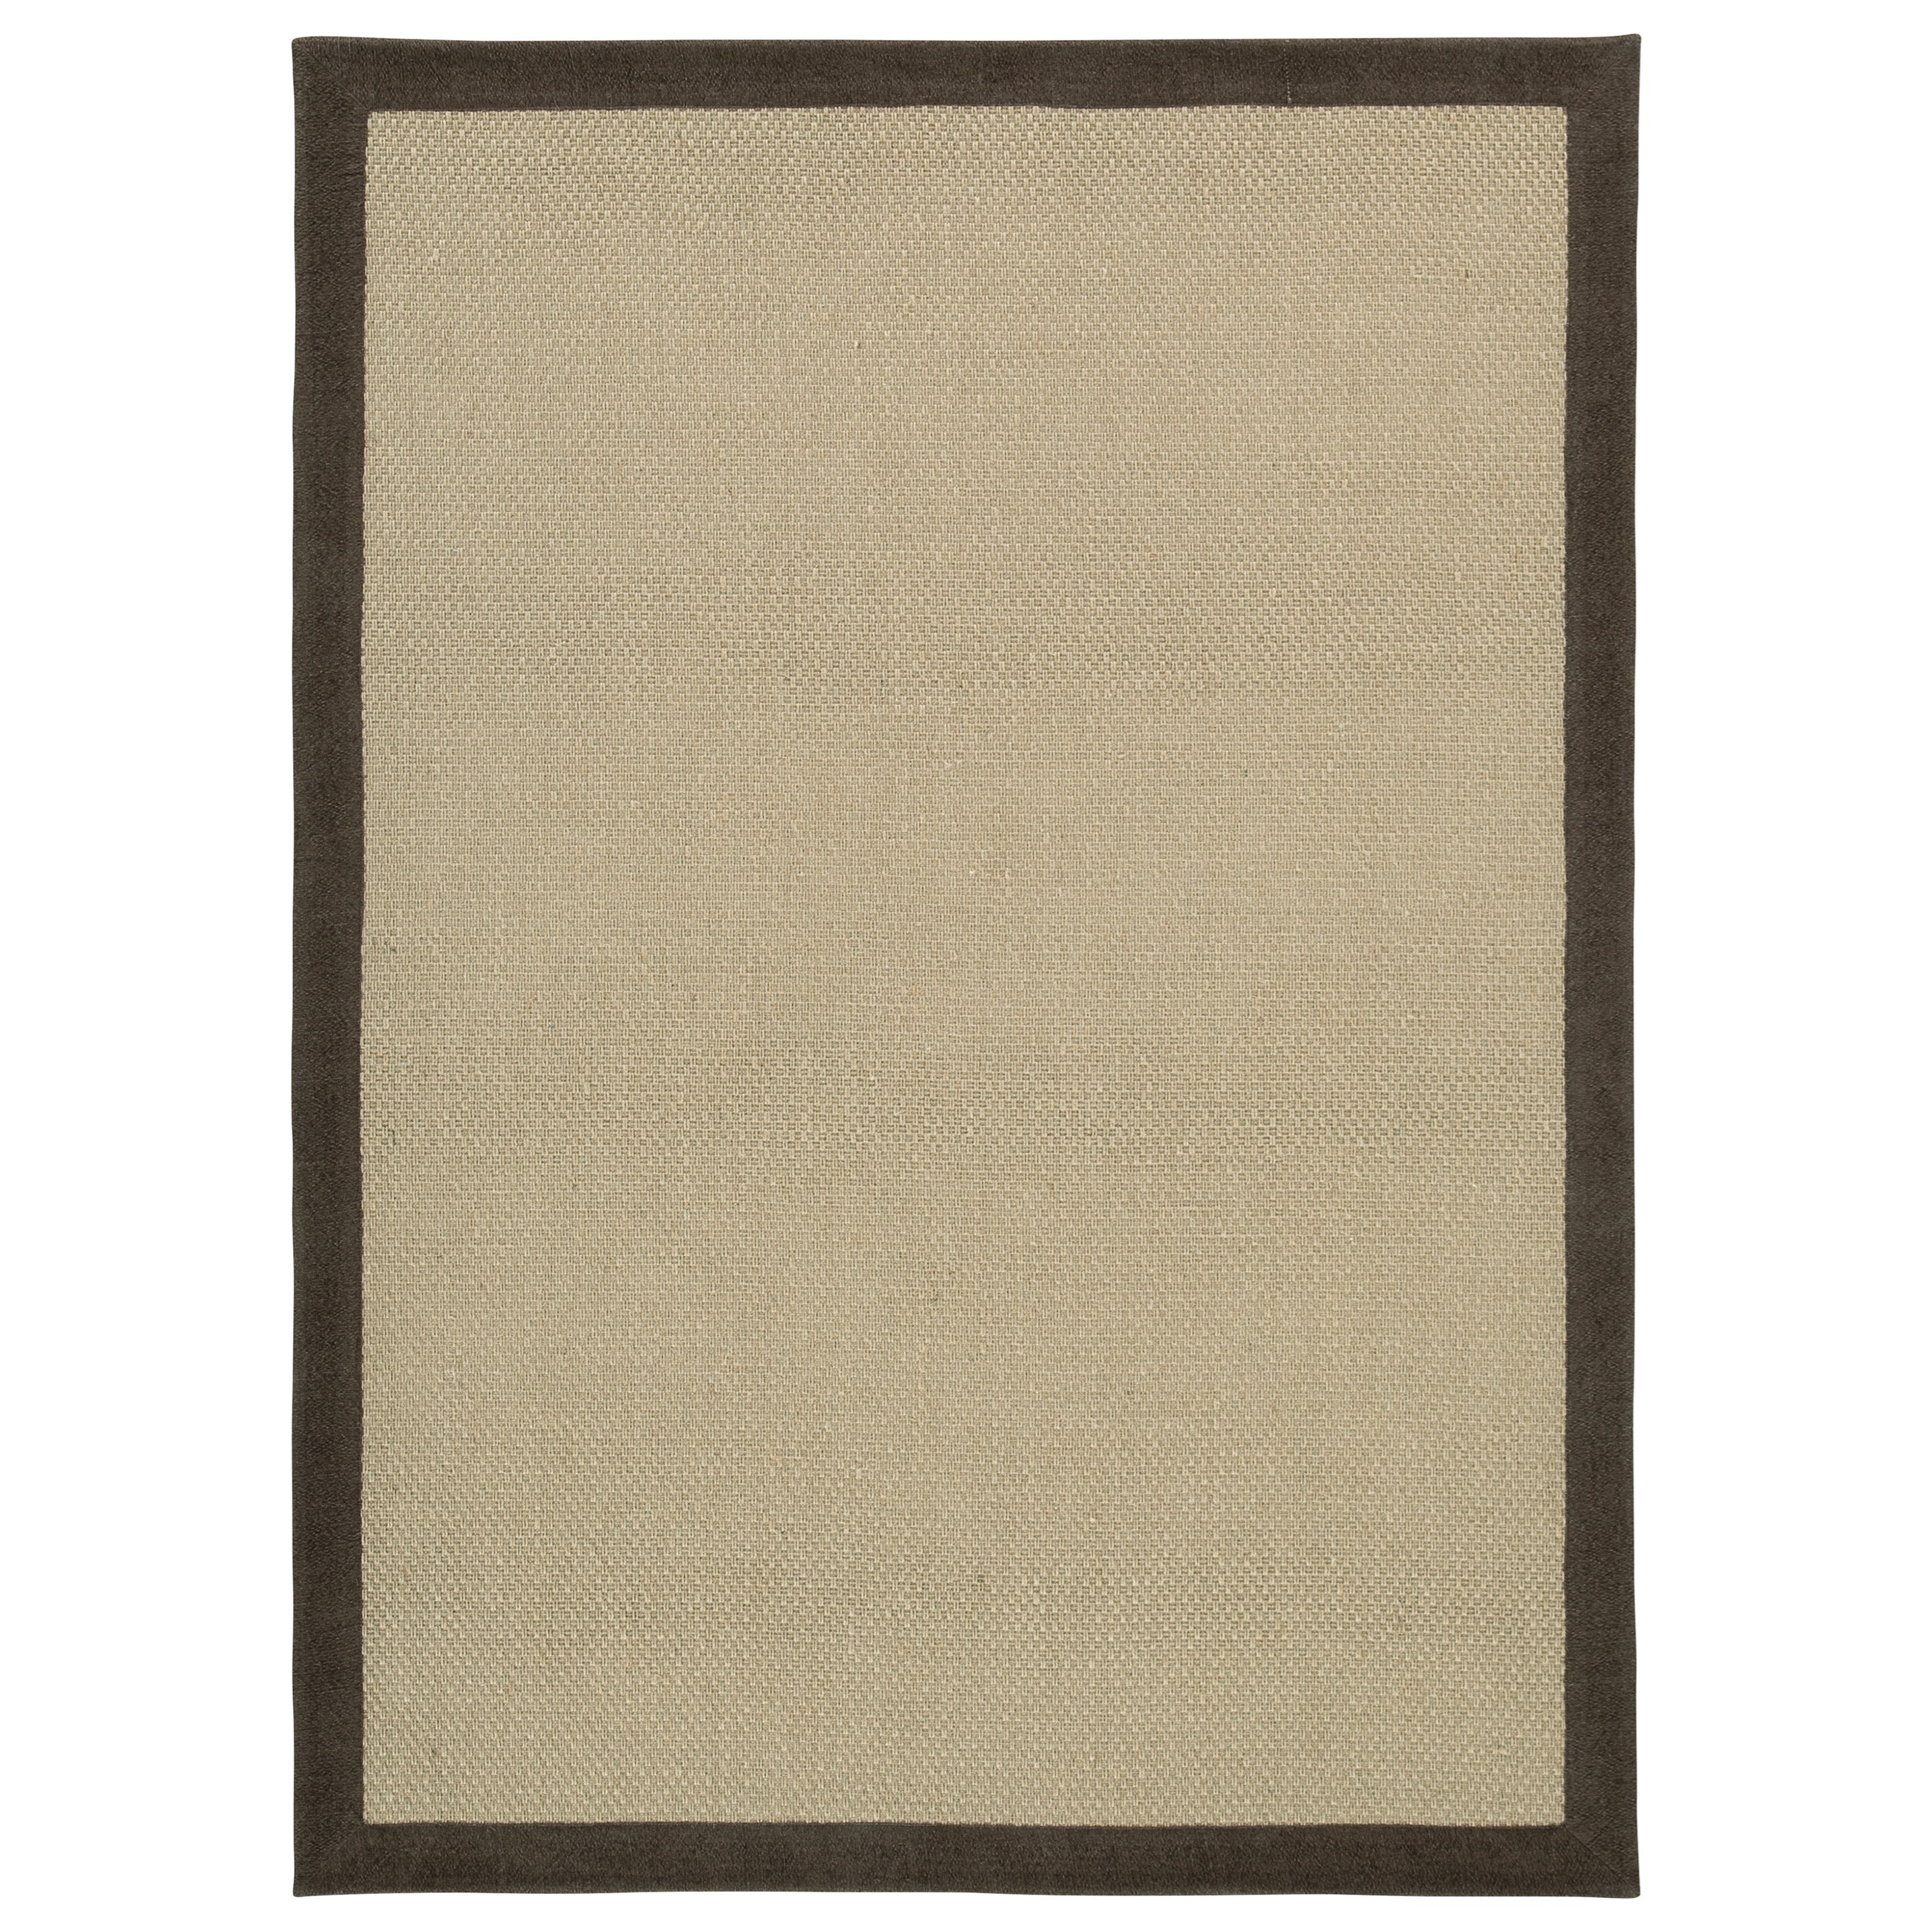 Signature Design by Ashley Casual Area Rugs Delta City Beige / Chocolate Large Rug - Item Number: R403261